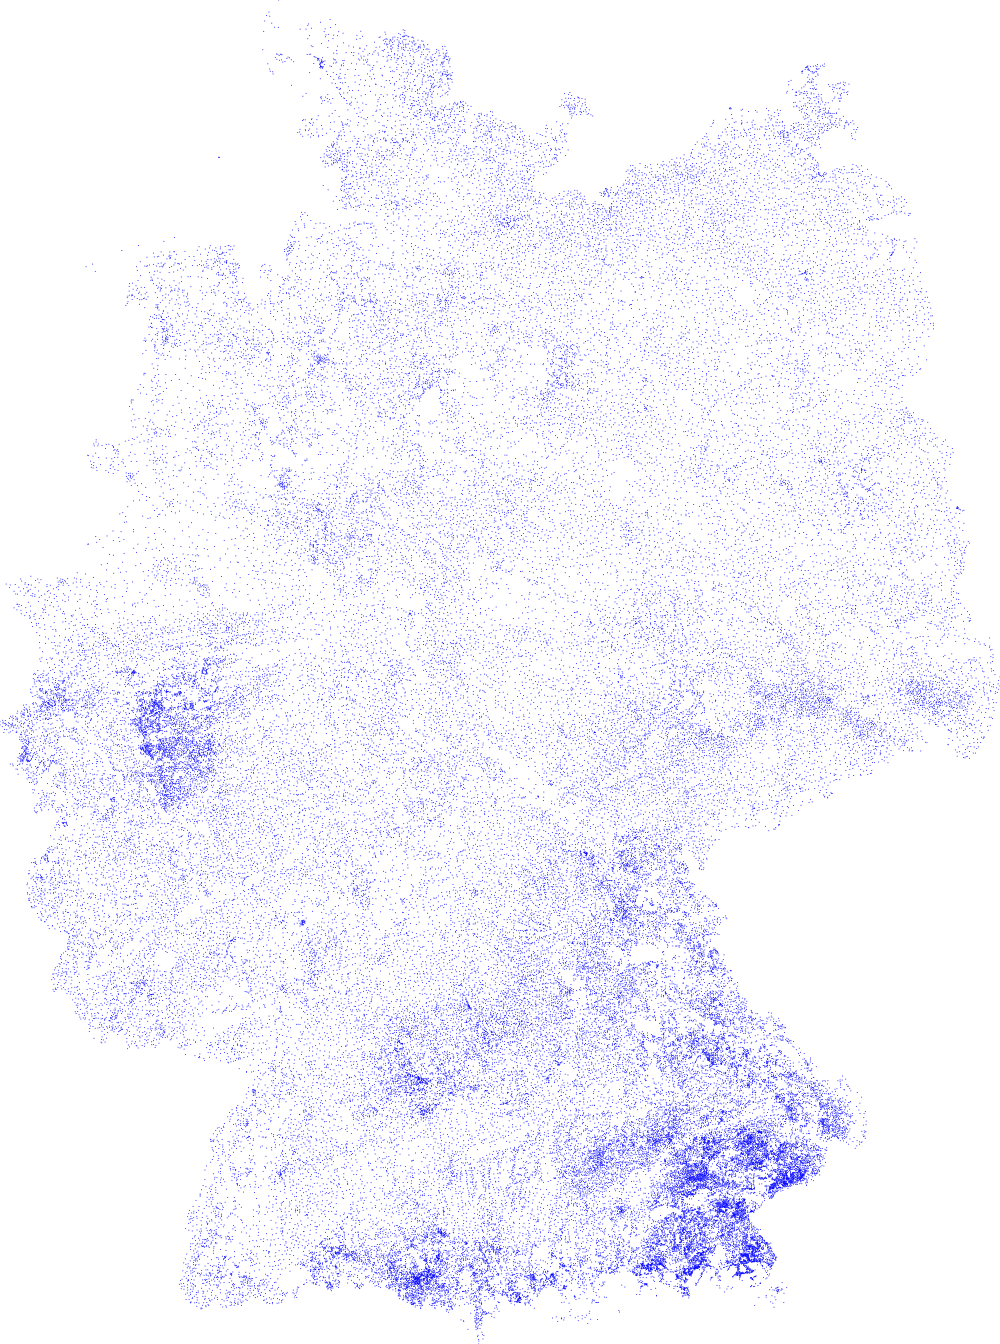 picture of all the cities of germany